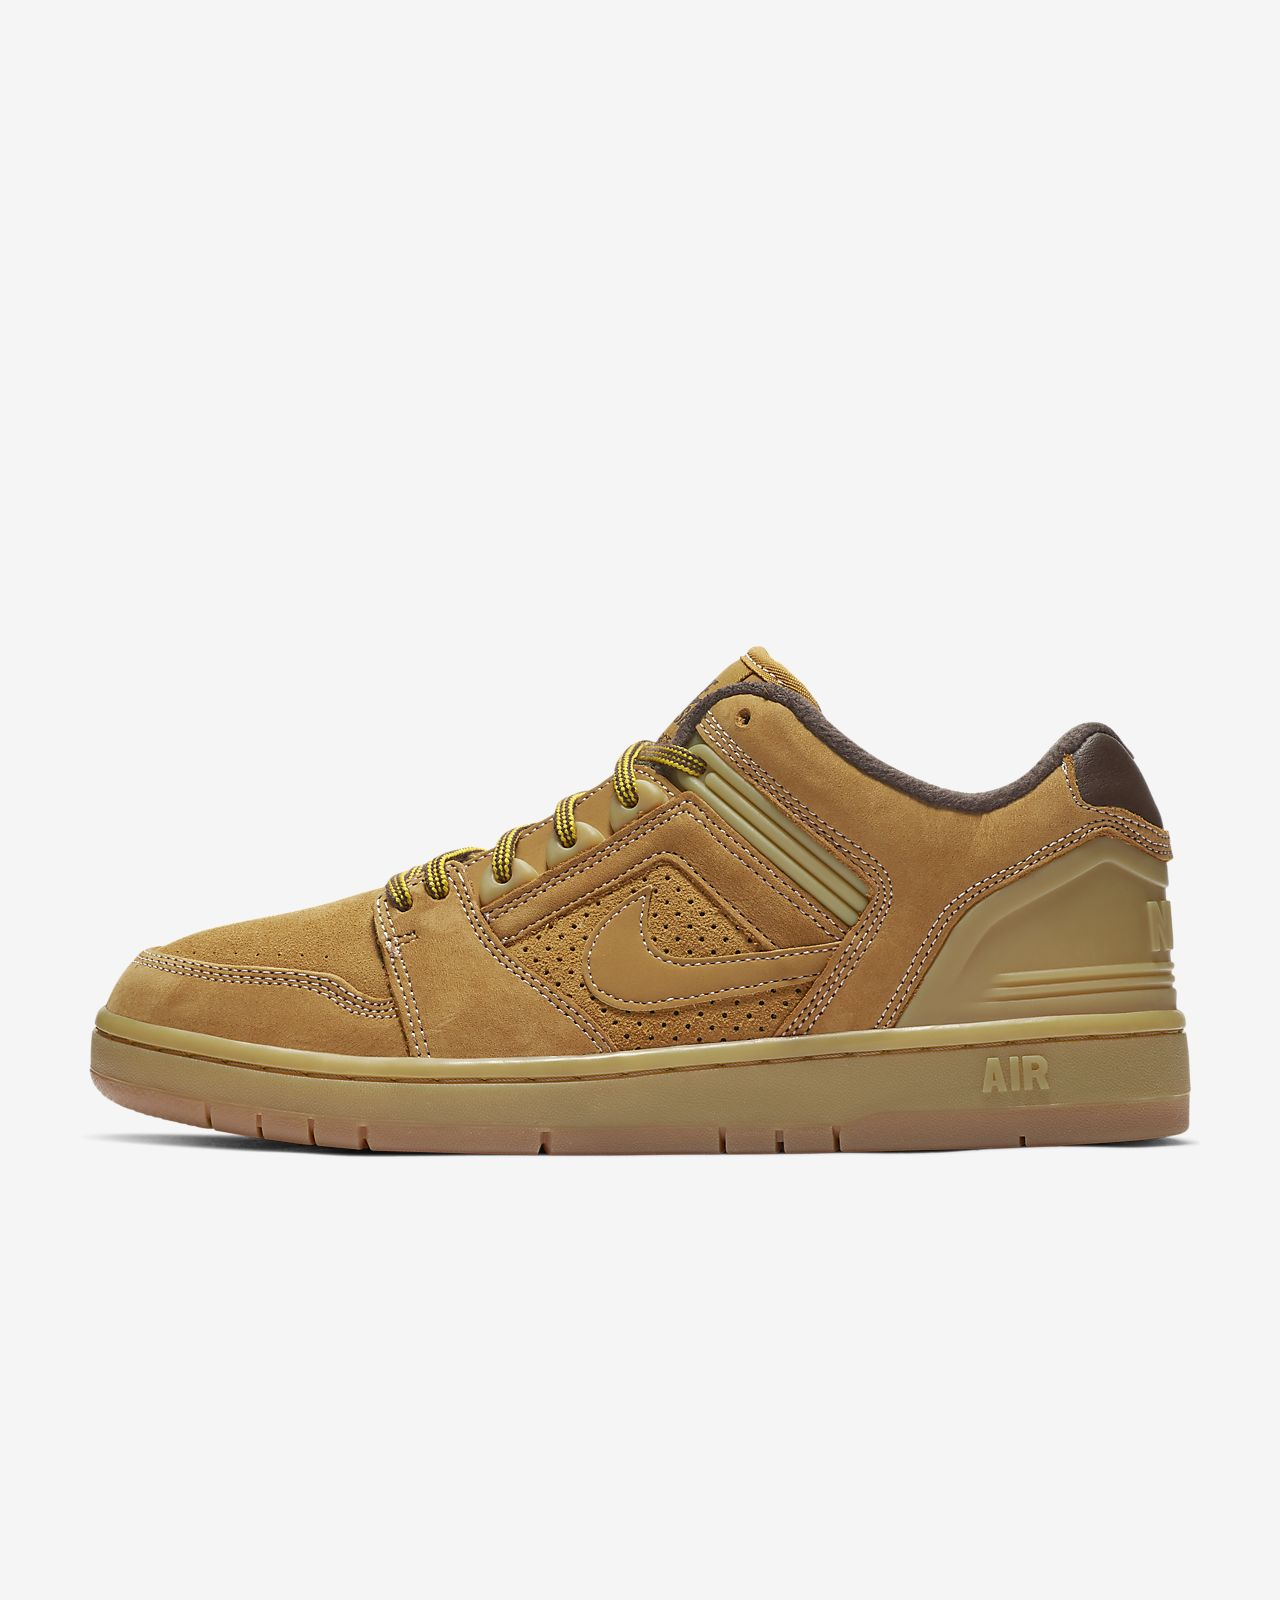 nike sb air force ii chaussures nike sb air force ii